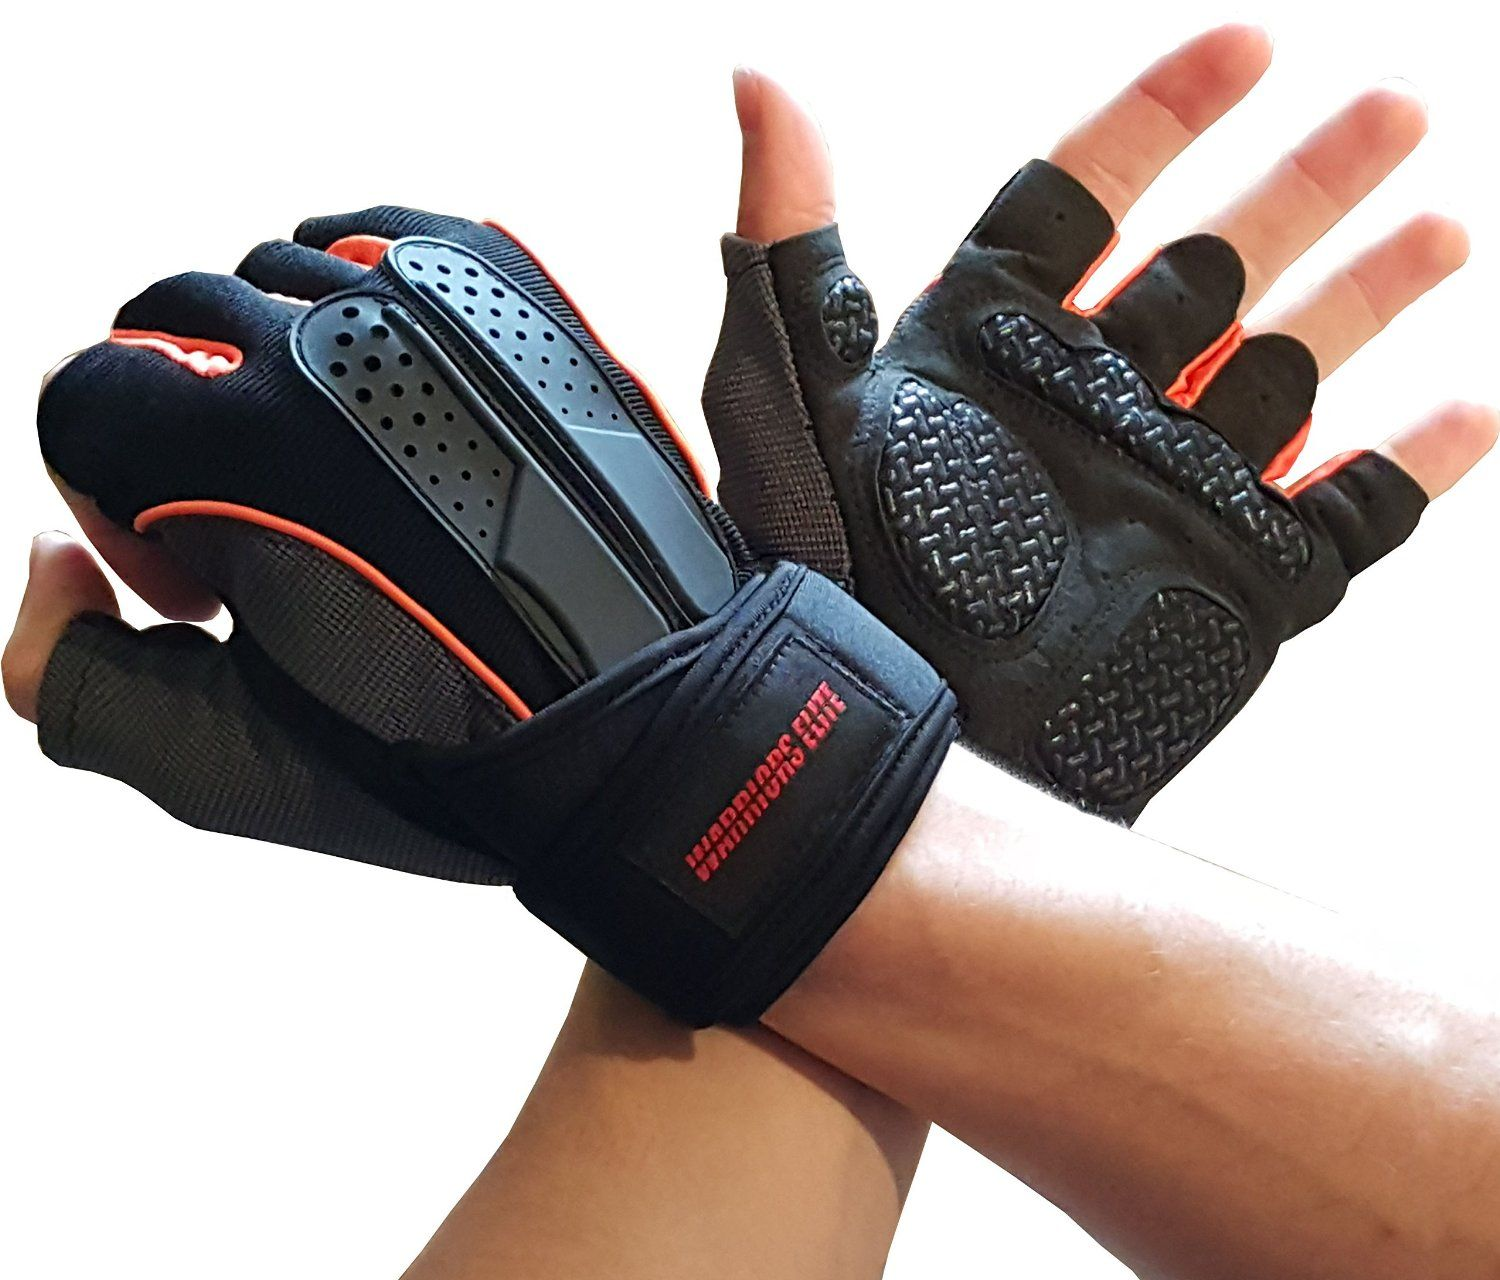 Reebok Strength Training Gloves Weight Lifting Fitness: Weight Lifting / Cross-Fit Gloves (Black